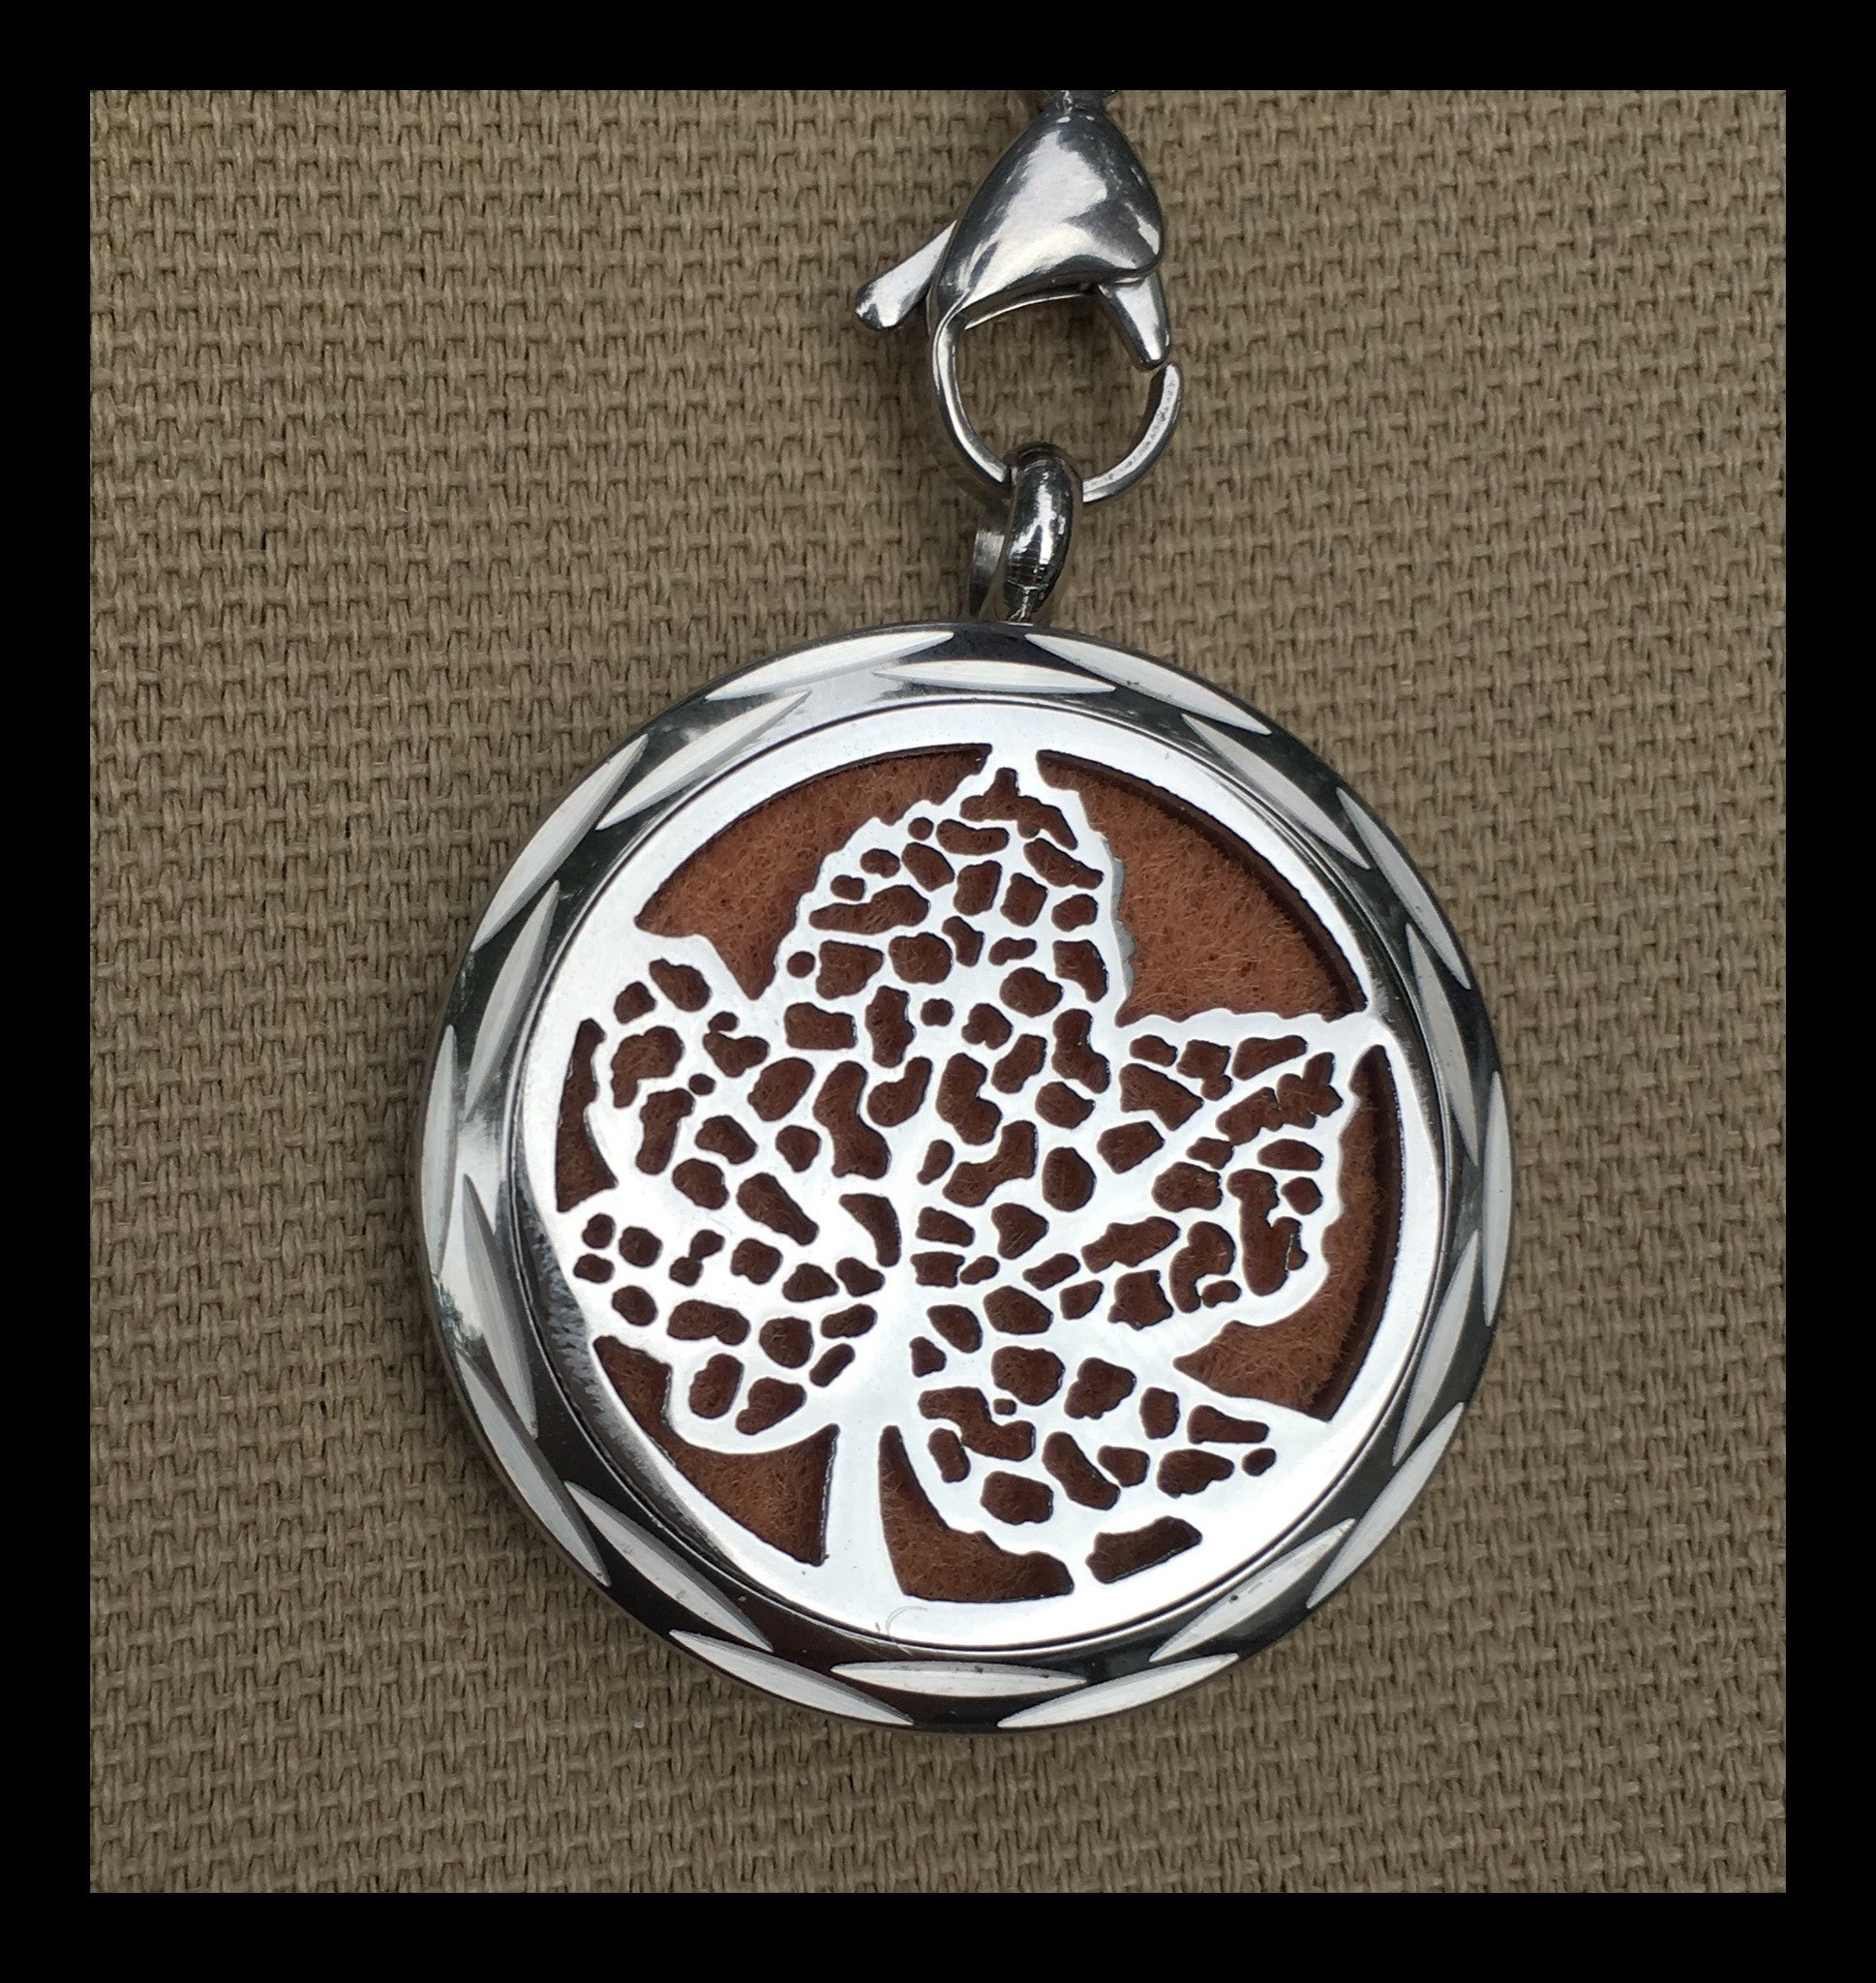 30mm Stainless Steel Leaf Diffuser Necklace